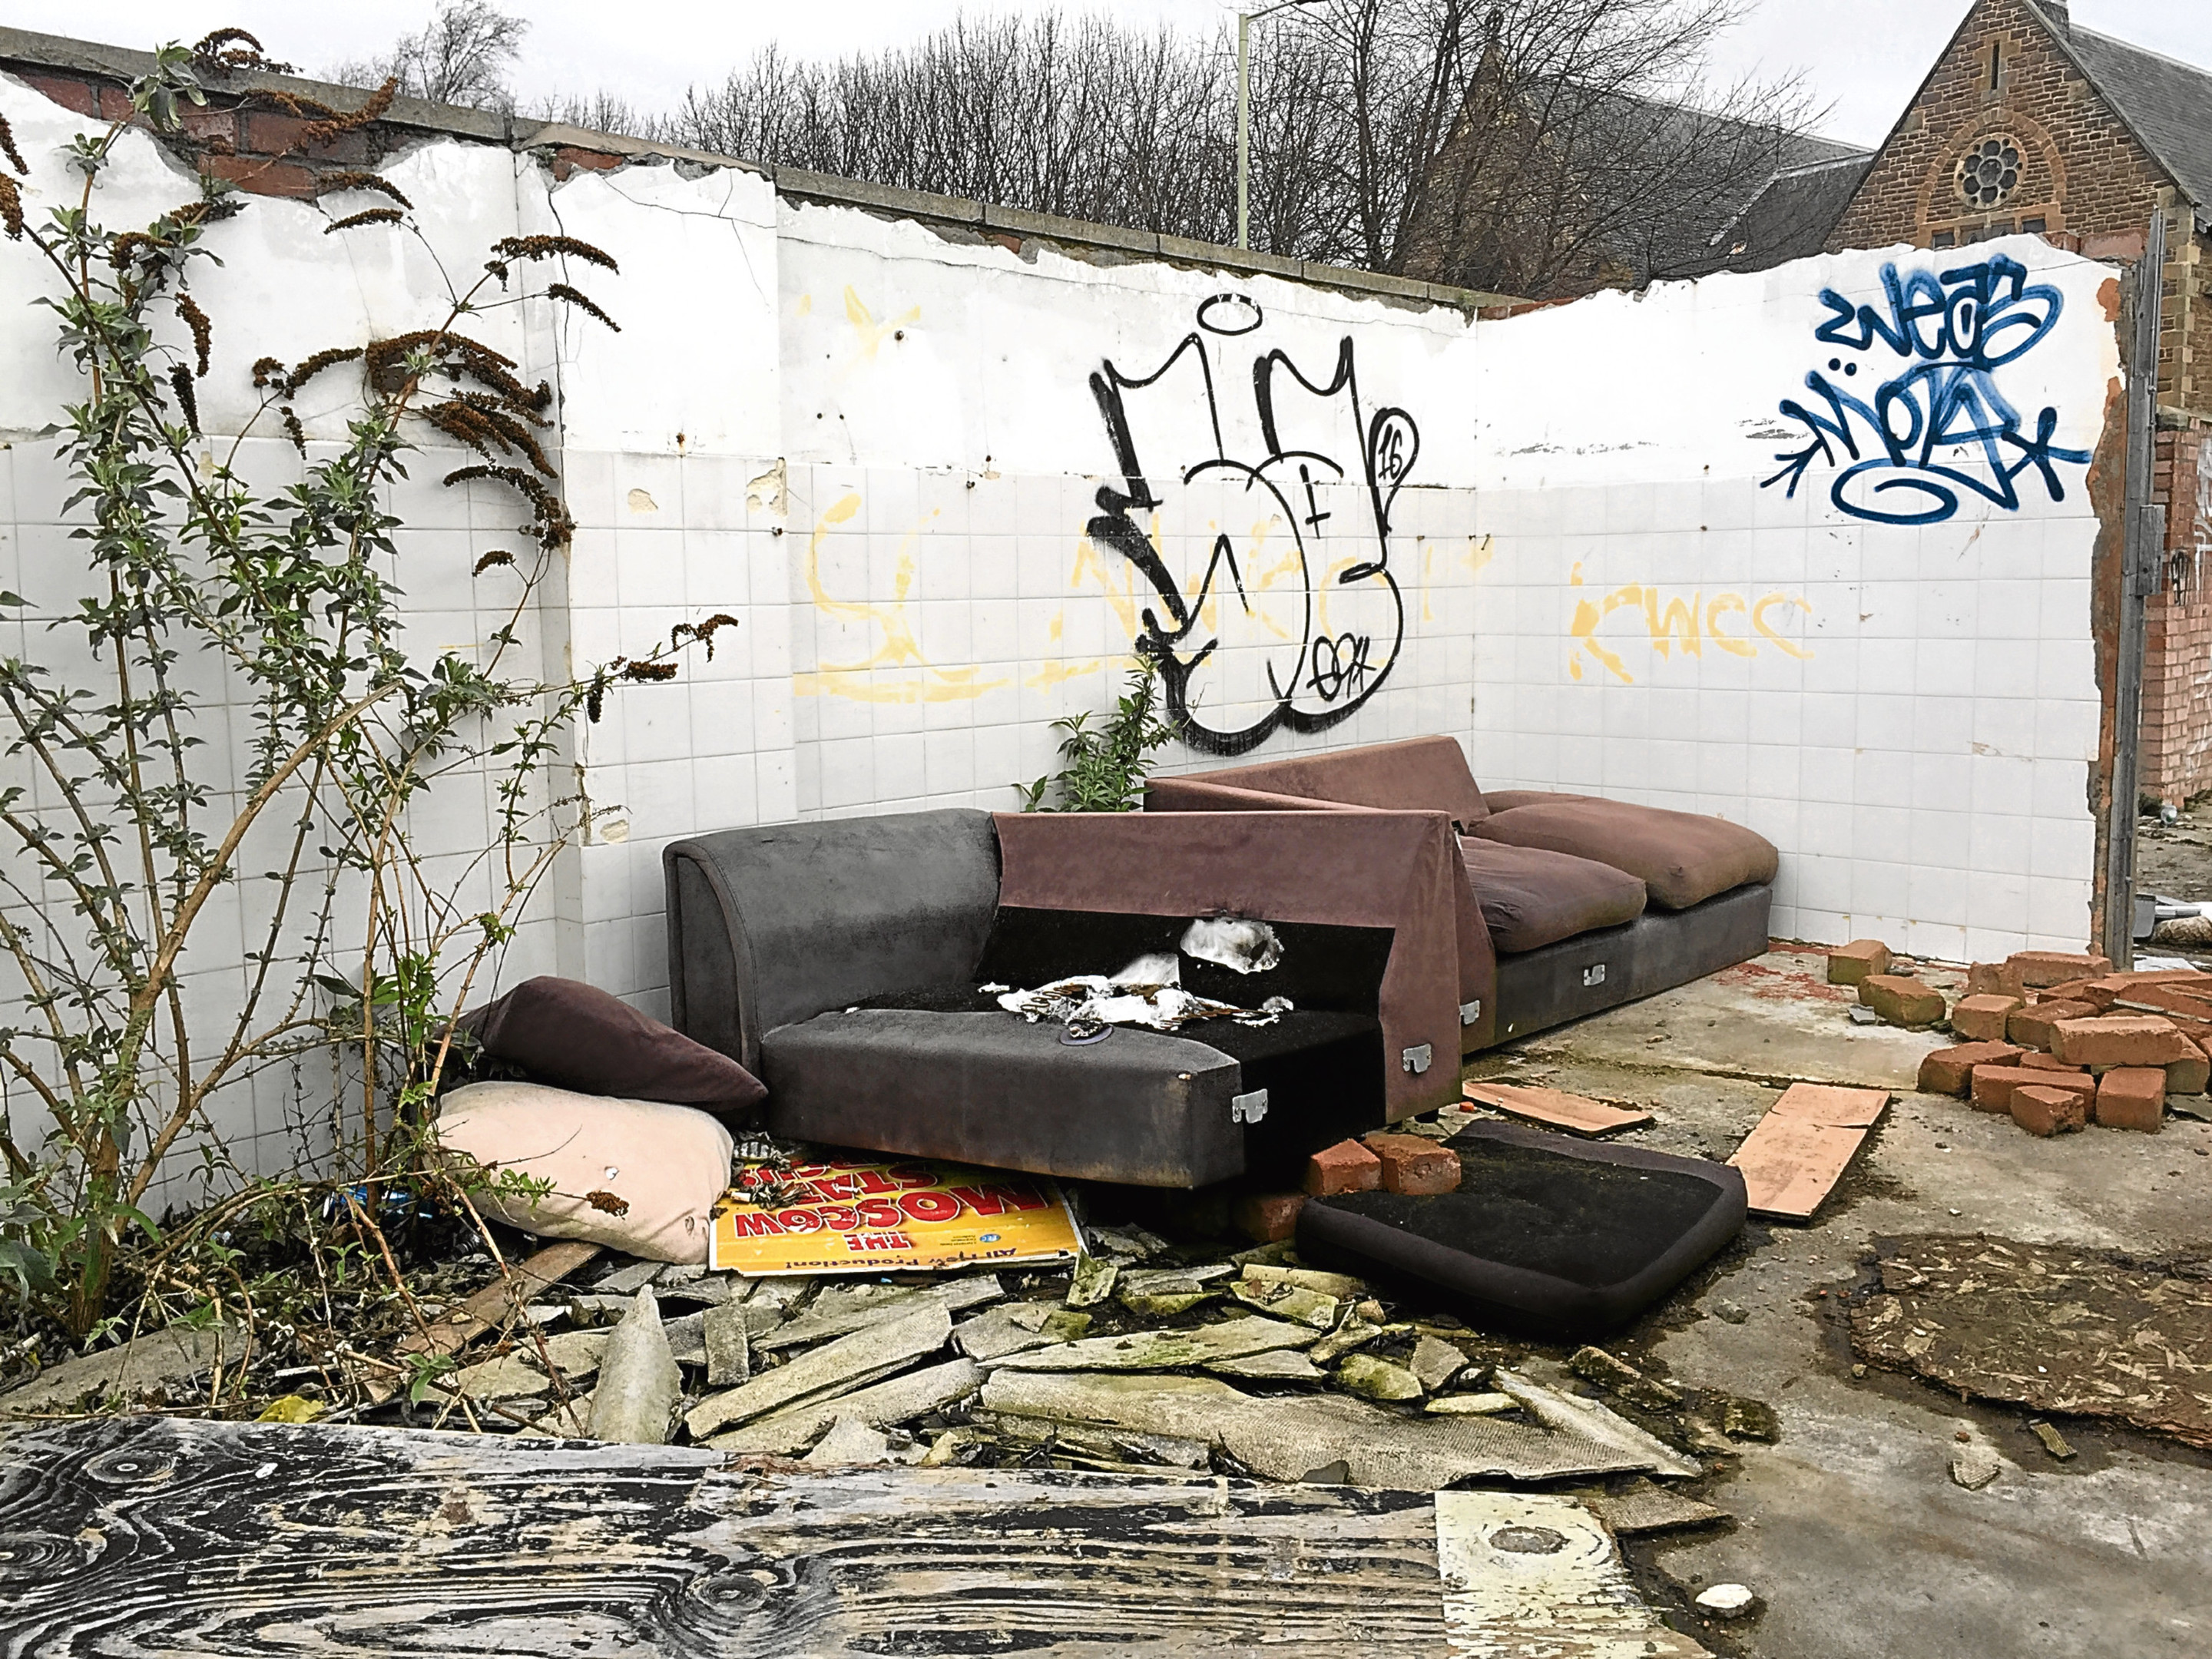 The former Maxwelltown Works site which has been plague with flytipping. Sofas have been discarded at the factory.